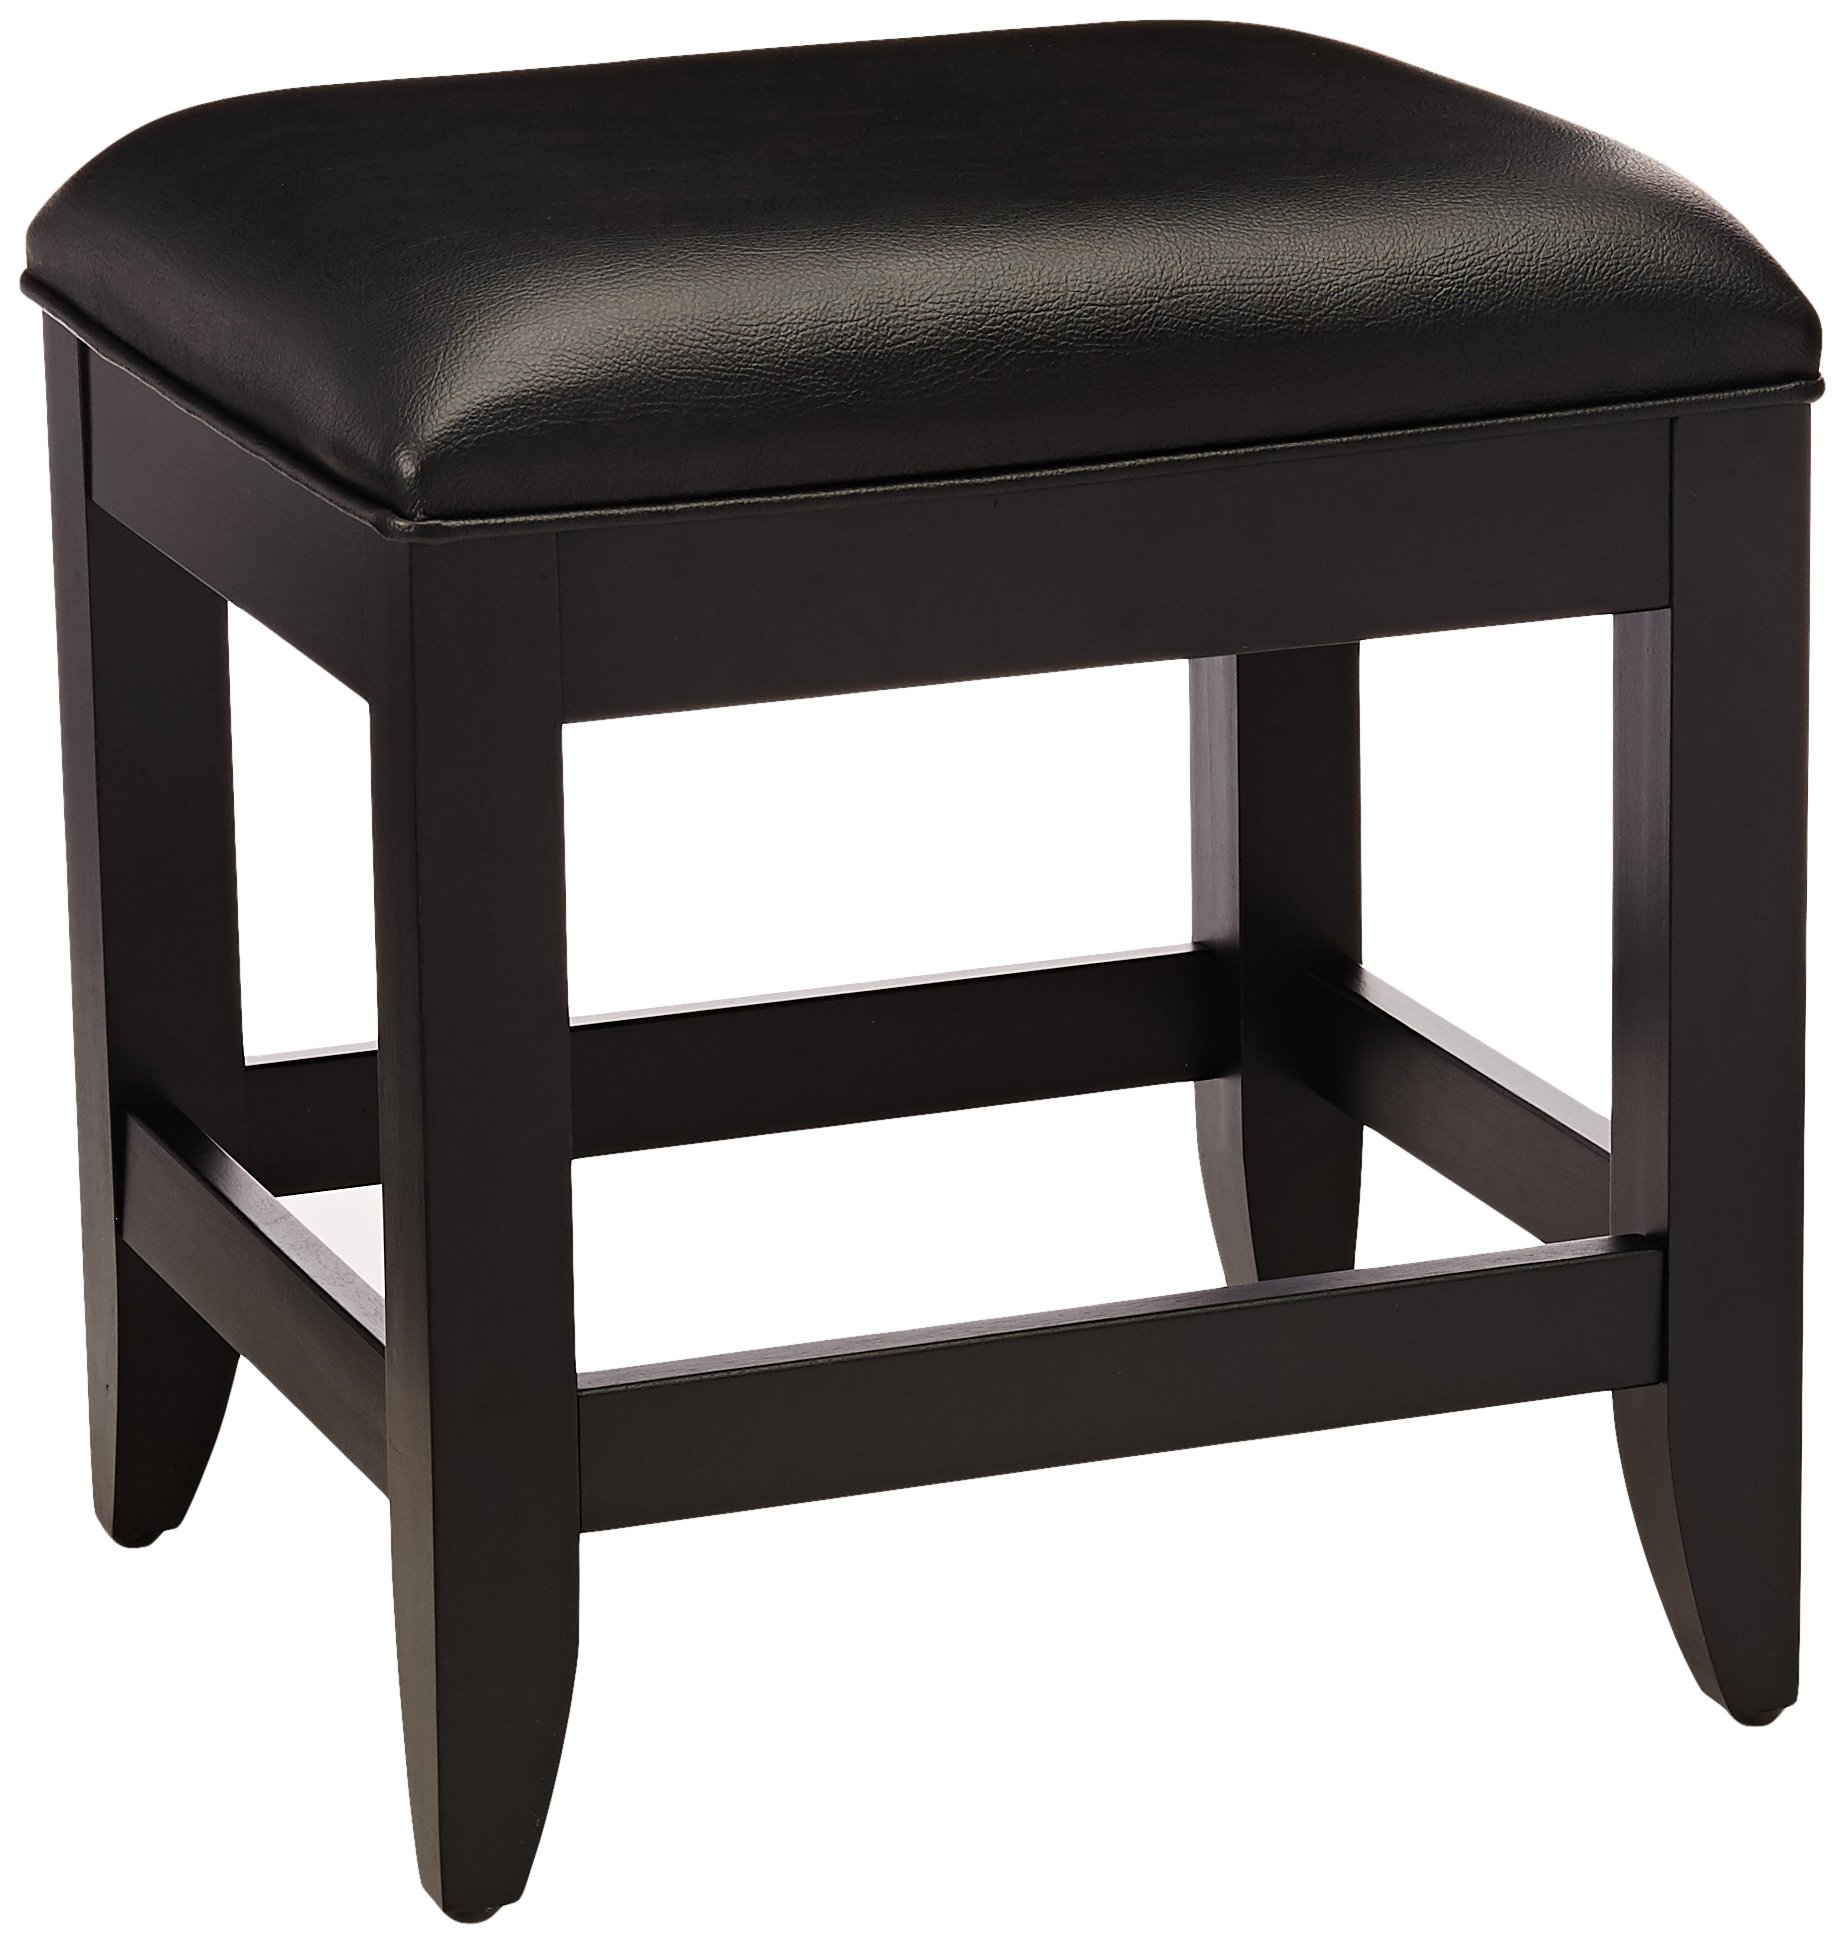 Bedford Black Vanity Bench by Home Styles by Home Styles